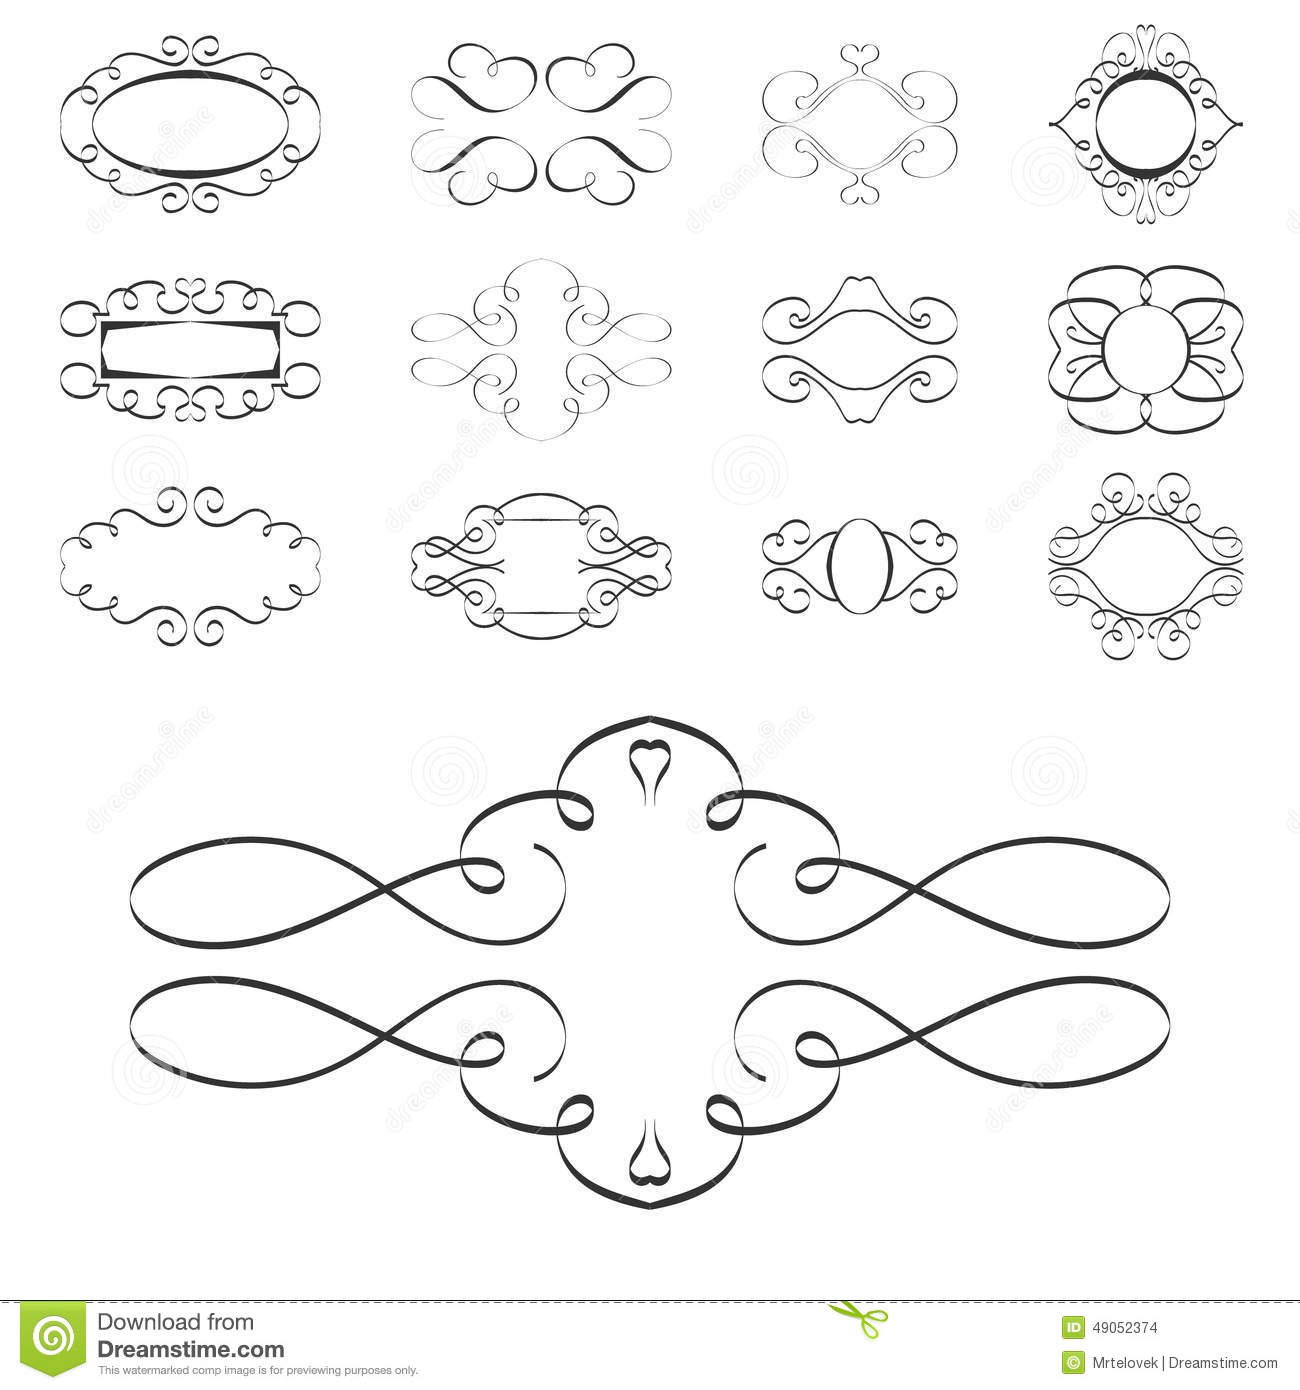 Calligraphy Design Elements Ornaments Page Templates